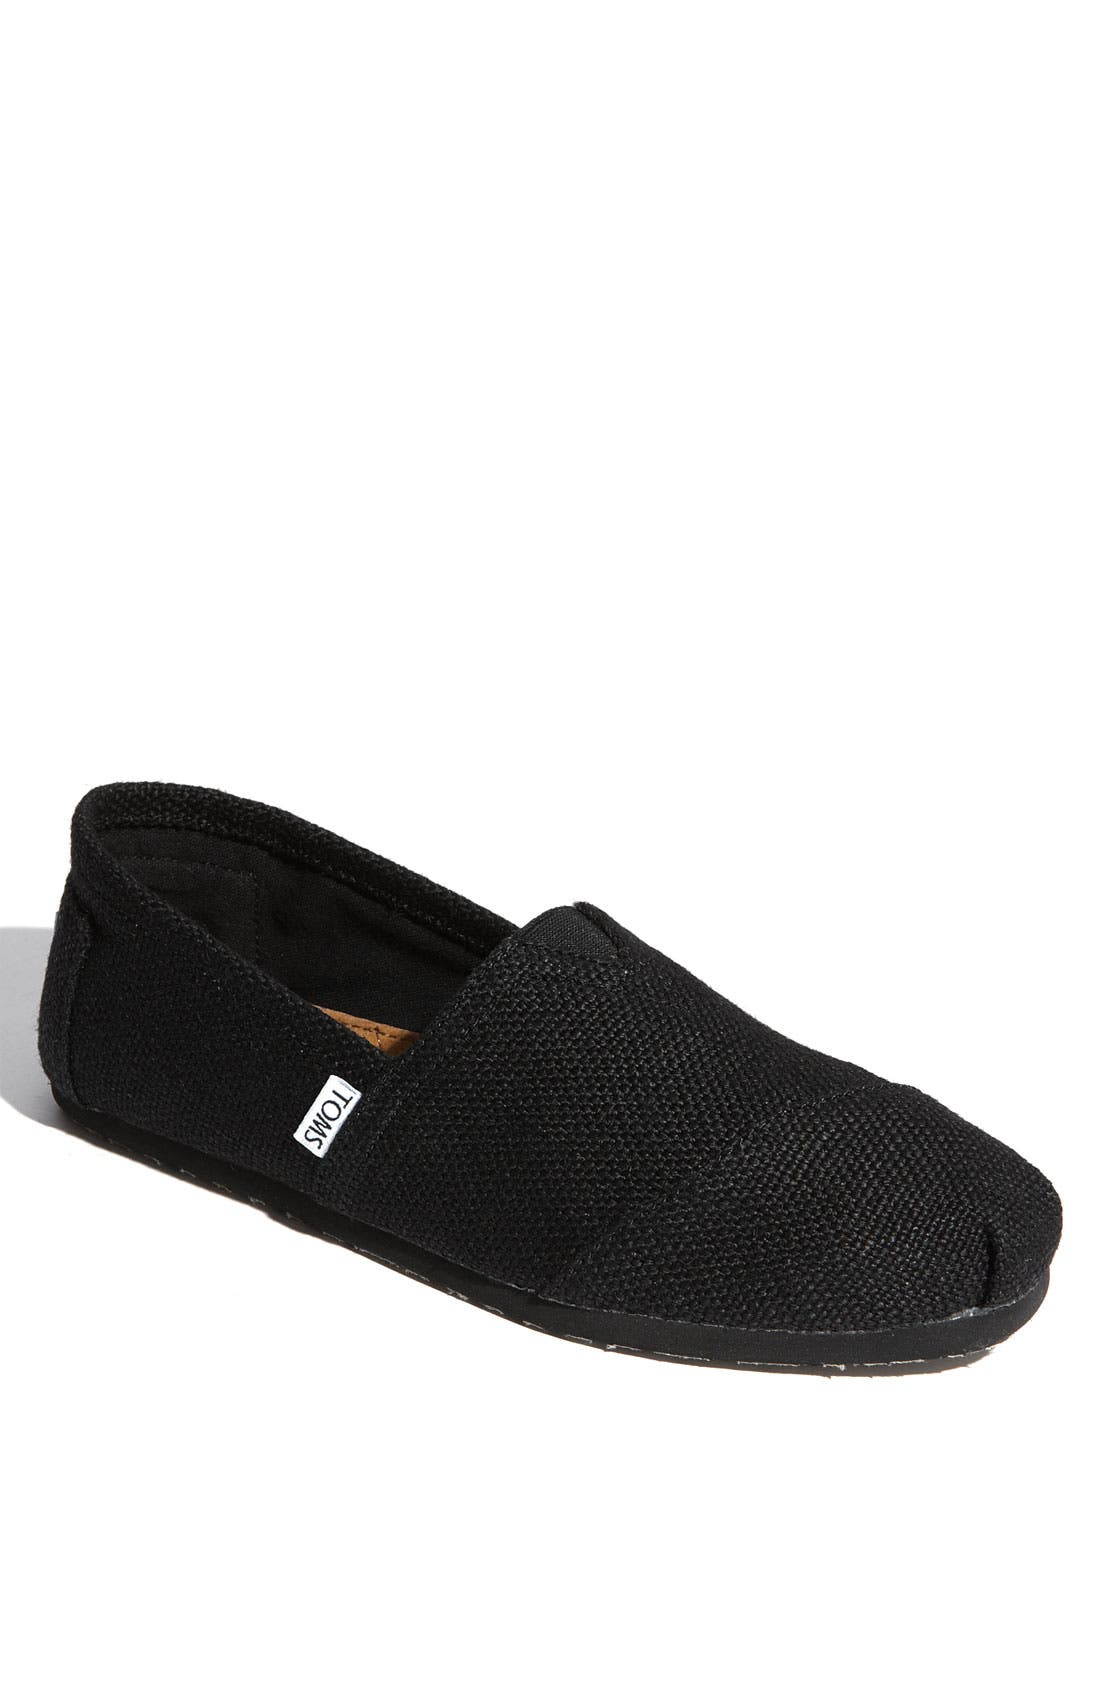 Alternate Image 1 Selected - TOMS 'Classic' Burlap Slip-On   (Men)